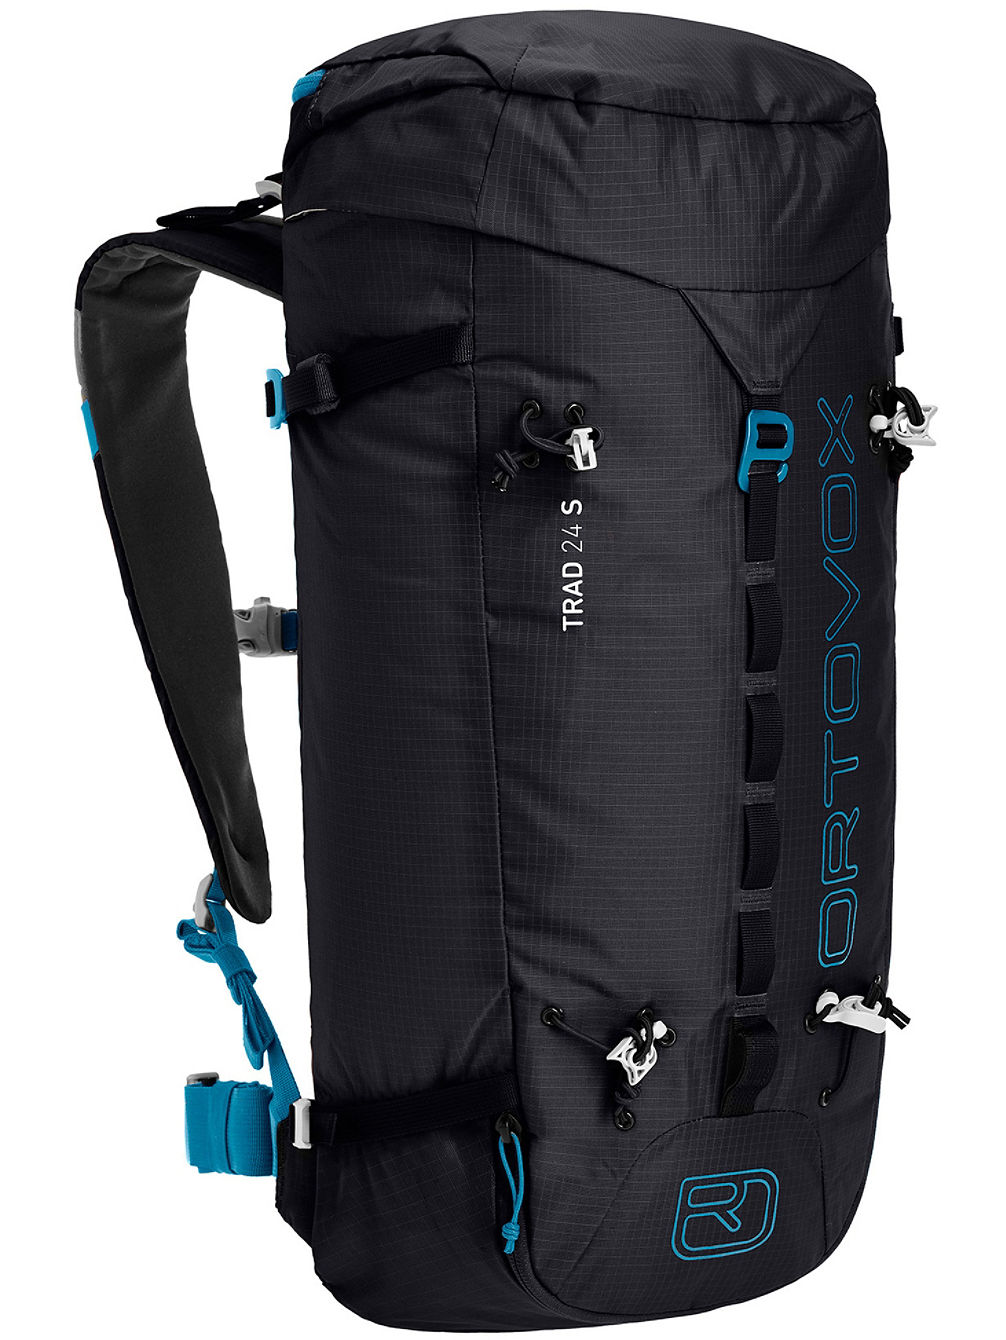 Trad 24 S Backpack